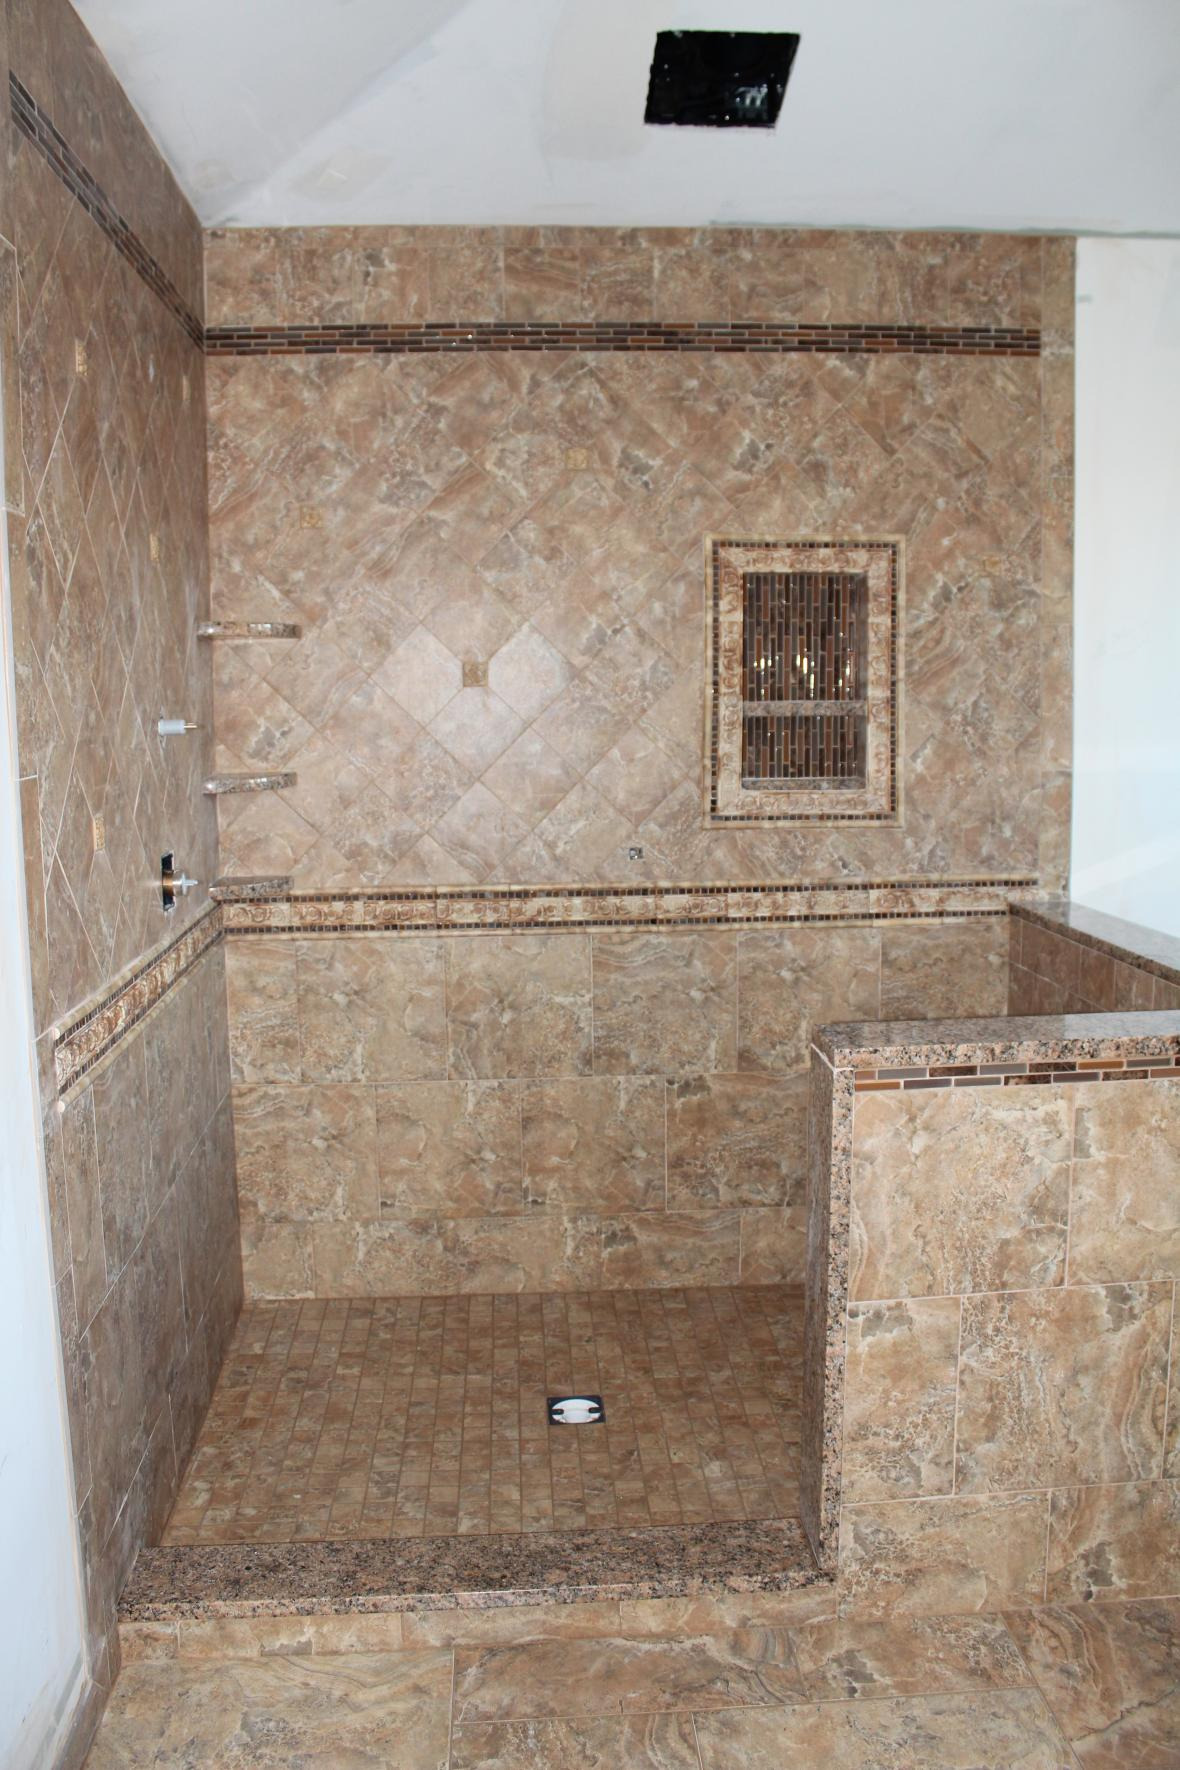 showroom bud of wall pattern uk with planner decorative kitchen latest shower bathtub fully modern white black flooring contemporary decorating tiled bathrooms styles